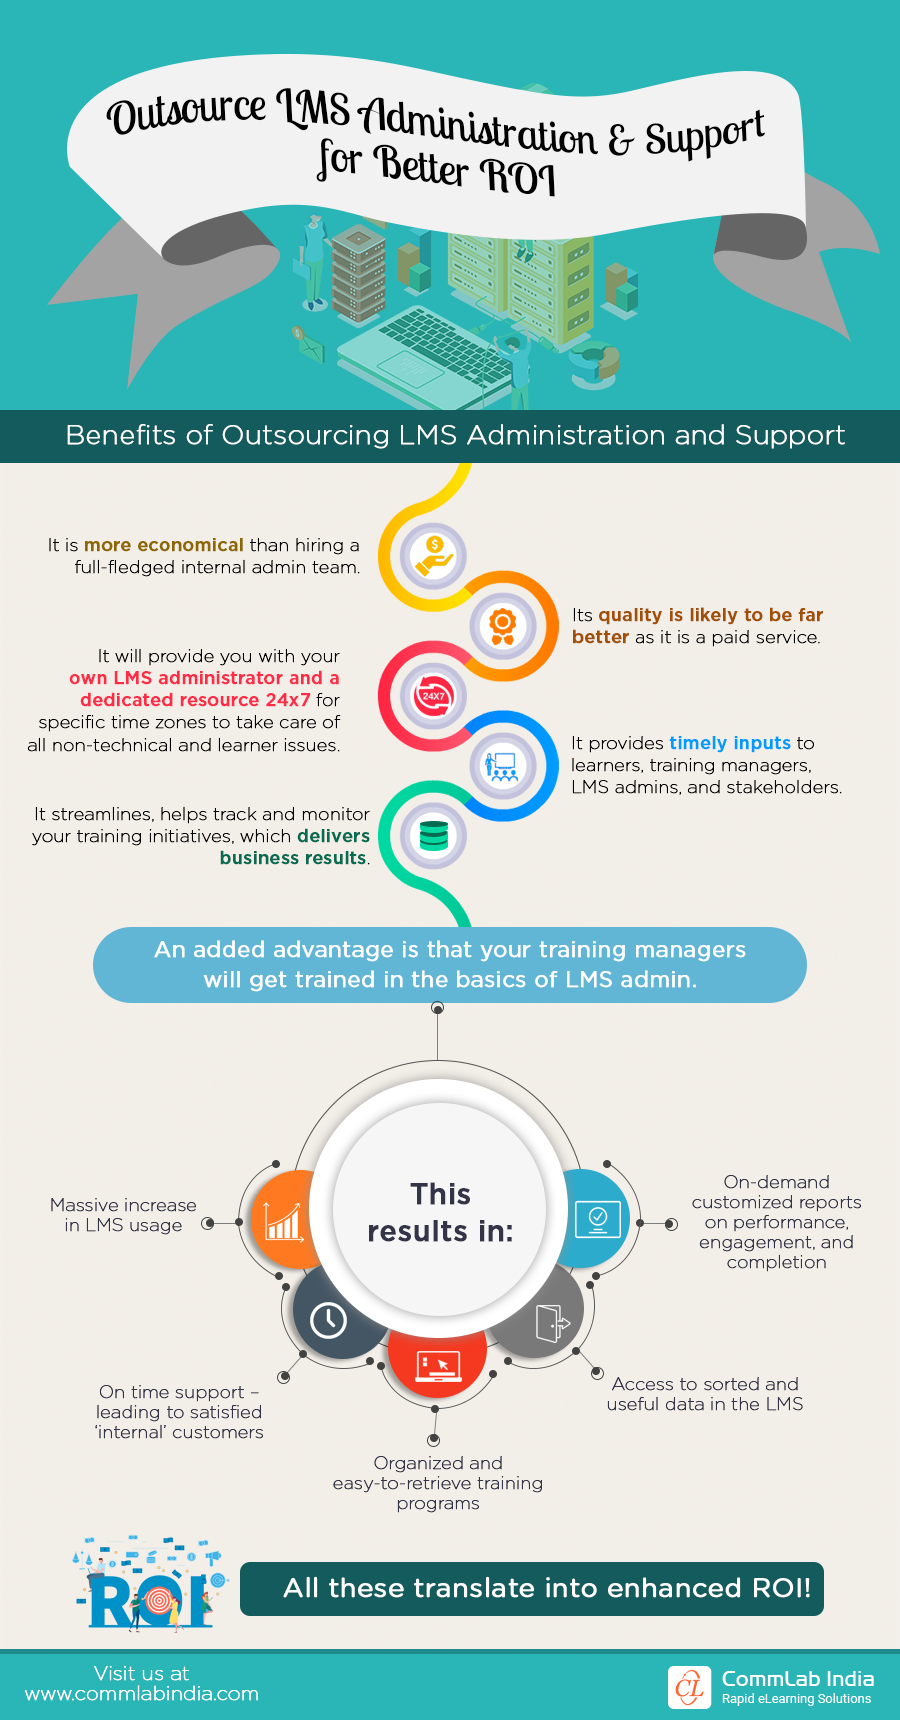 Outsourcing LMS Administration and Support for Enhanced ROI